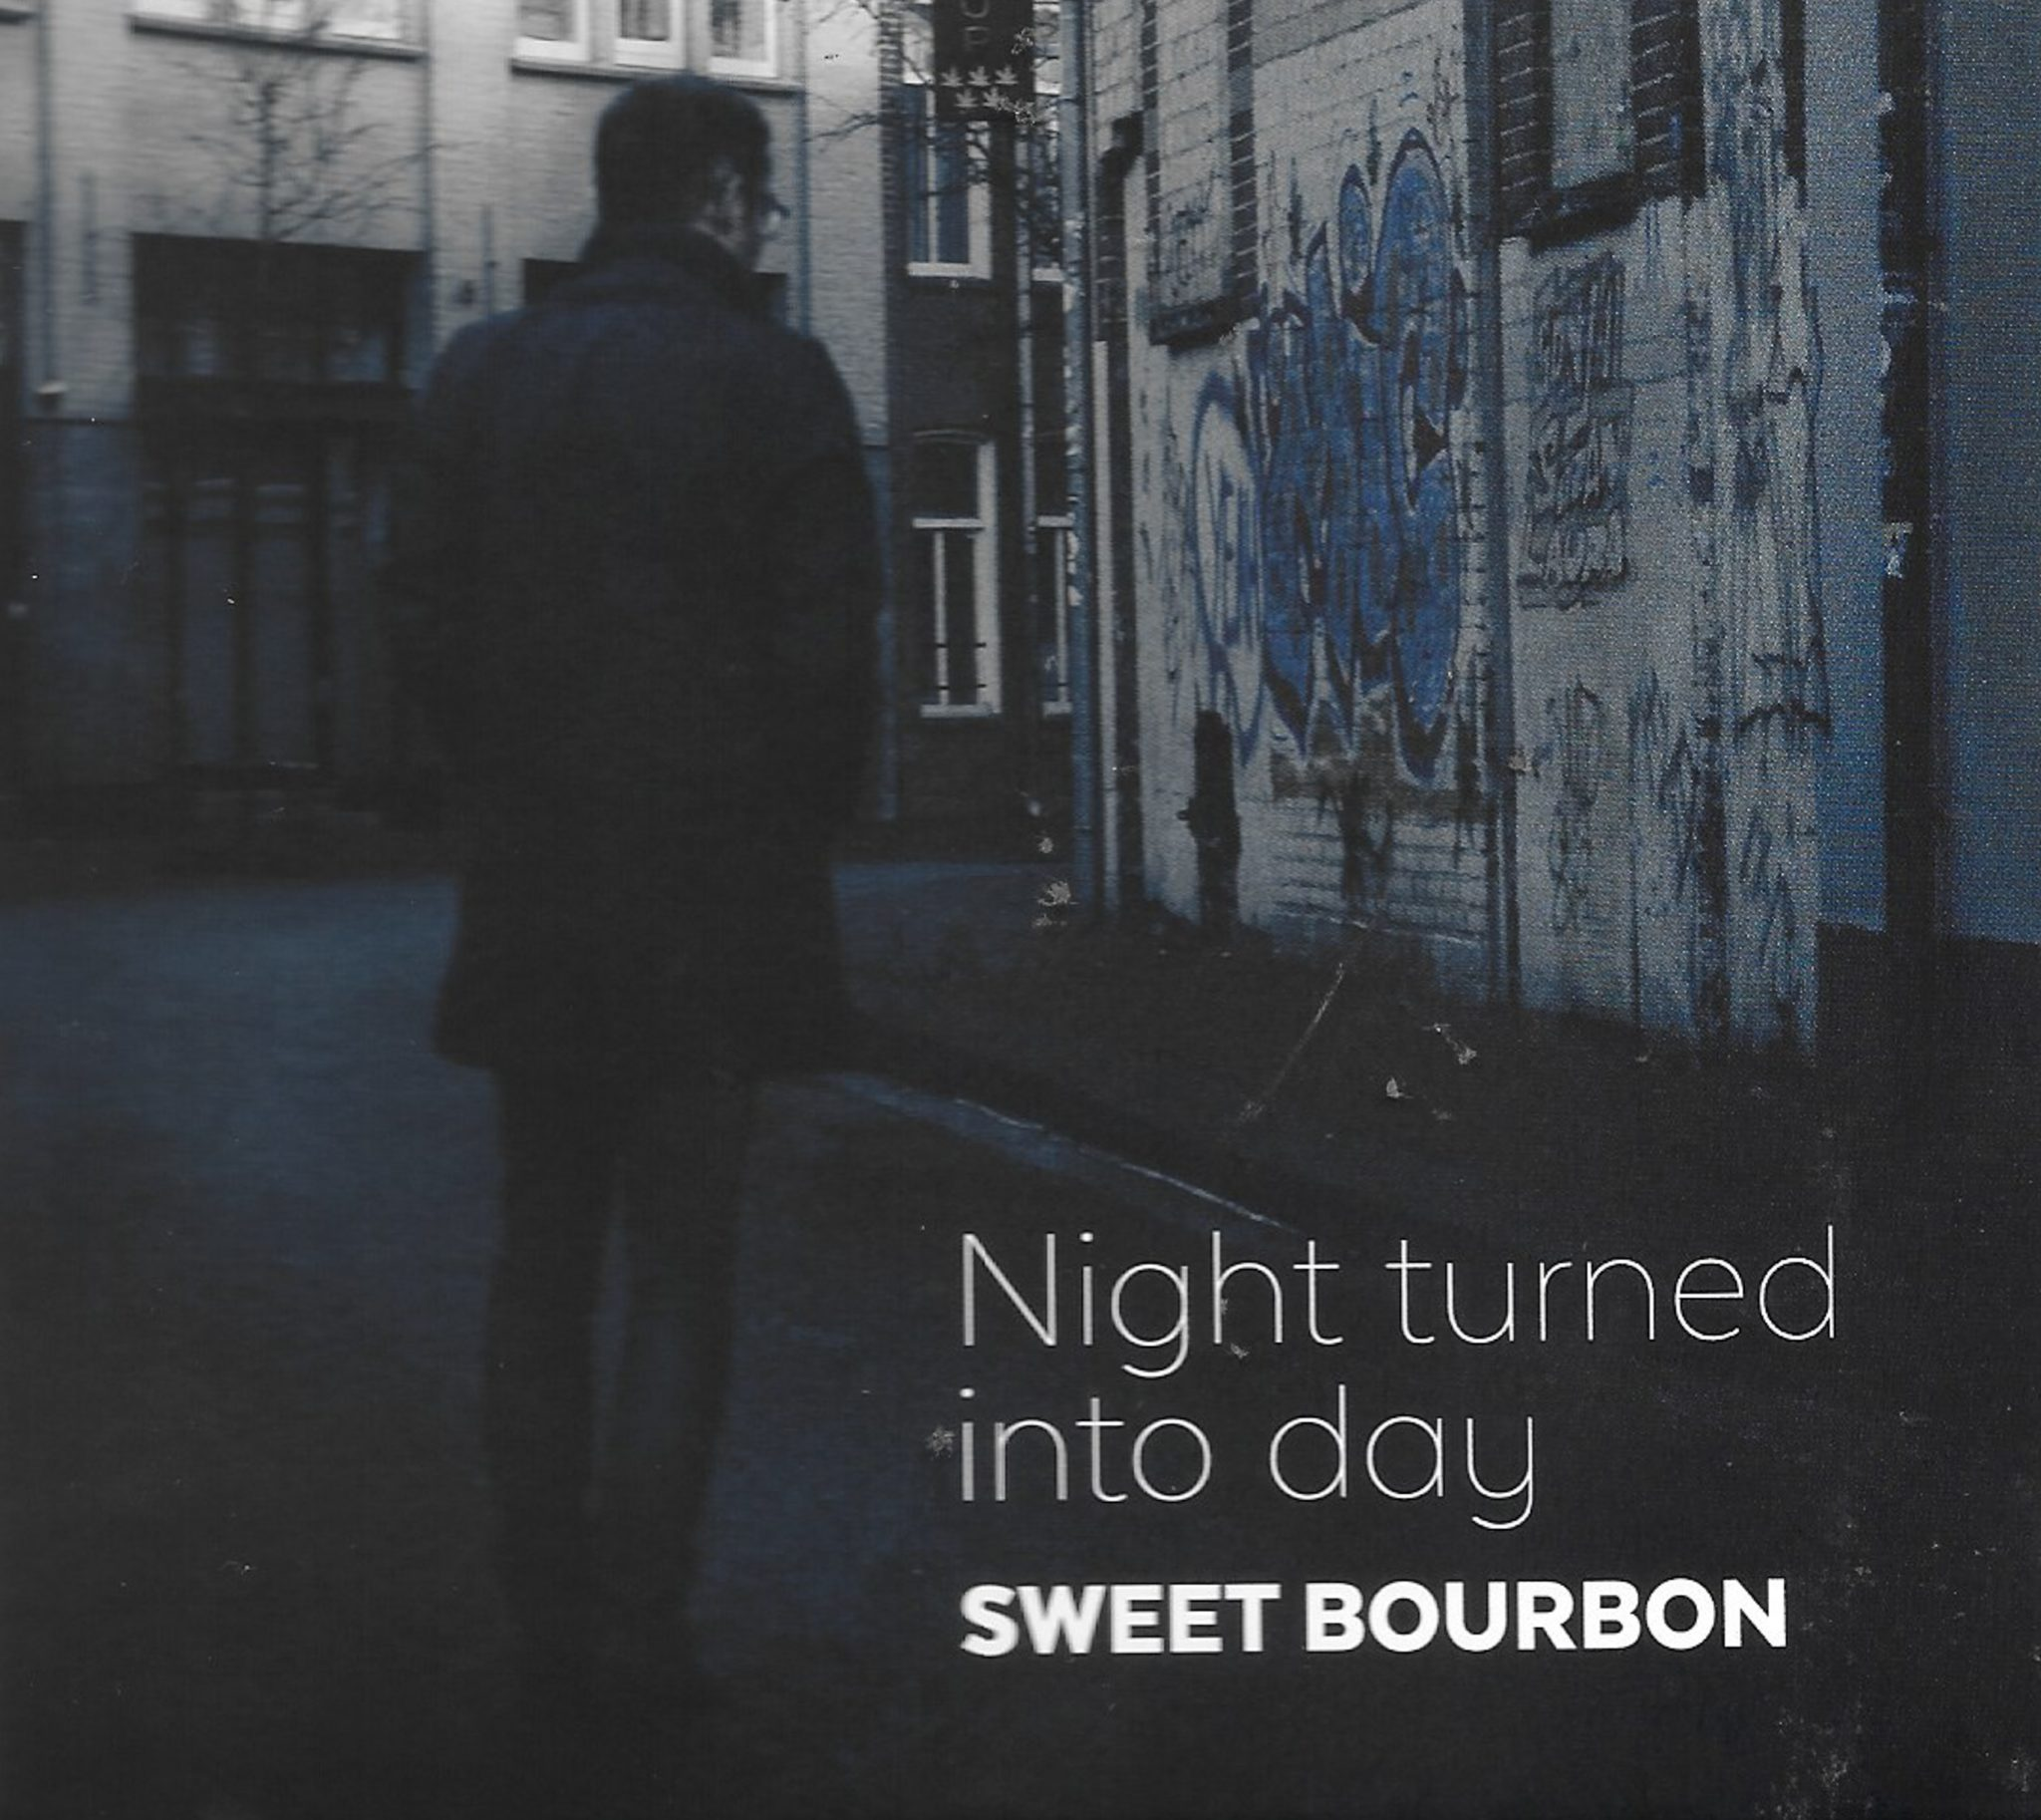 Witness Night Turned Into Day by Sweet Bourbon